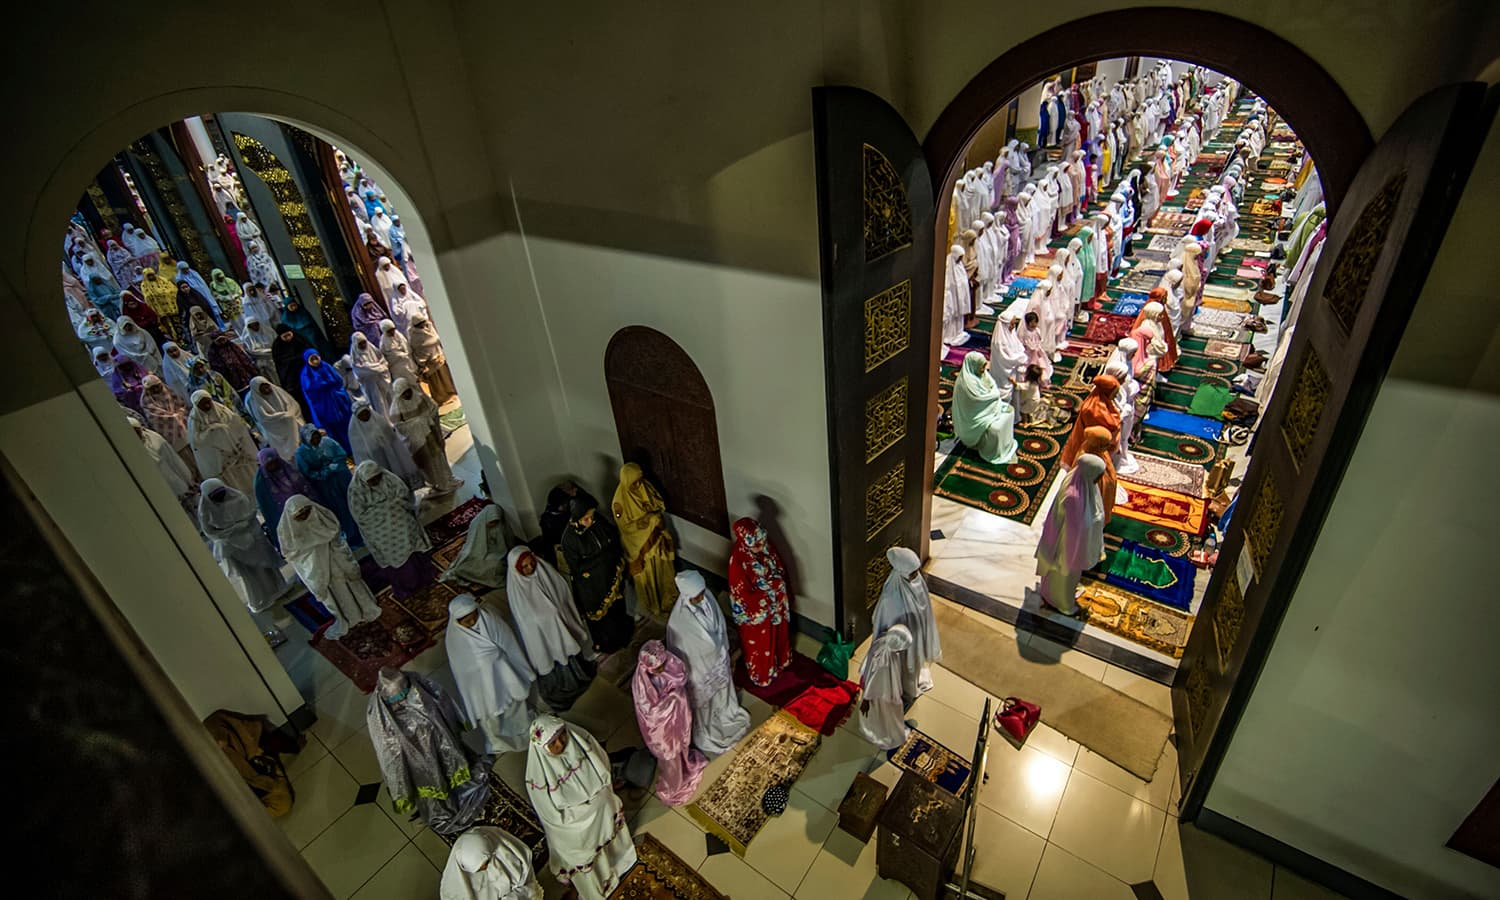 Indonesian Muslims pray during the start of the holy month of Ramazan at the Al Akbar Mosque in Surabaya, East Java province. — AFP